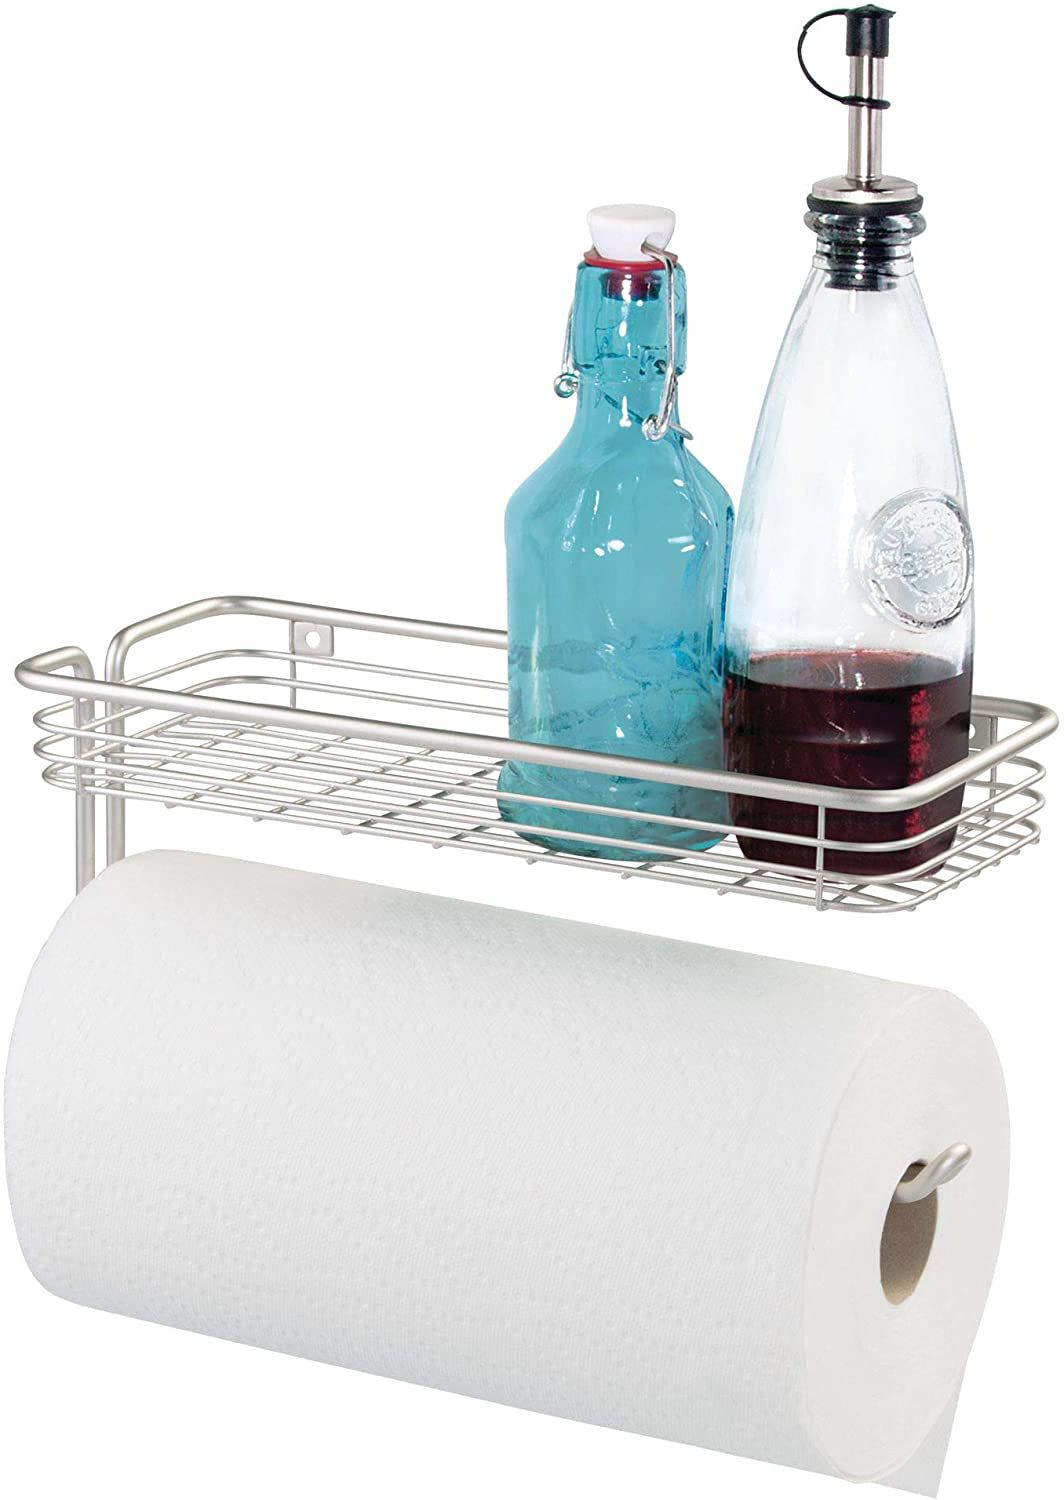 InterDesign Classico Over-the-Cabinet Paper Towel with Shelf